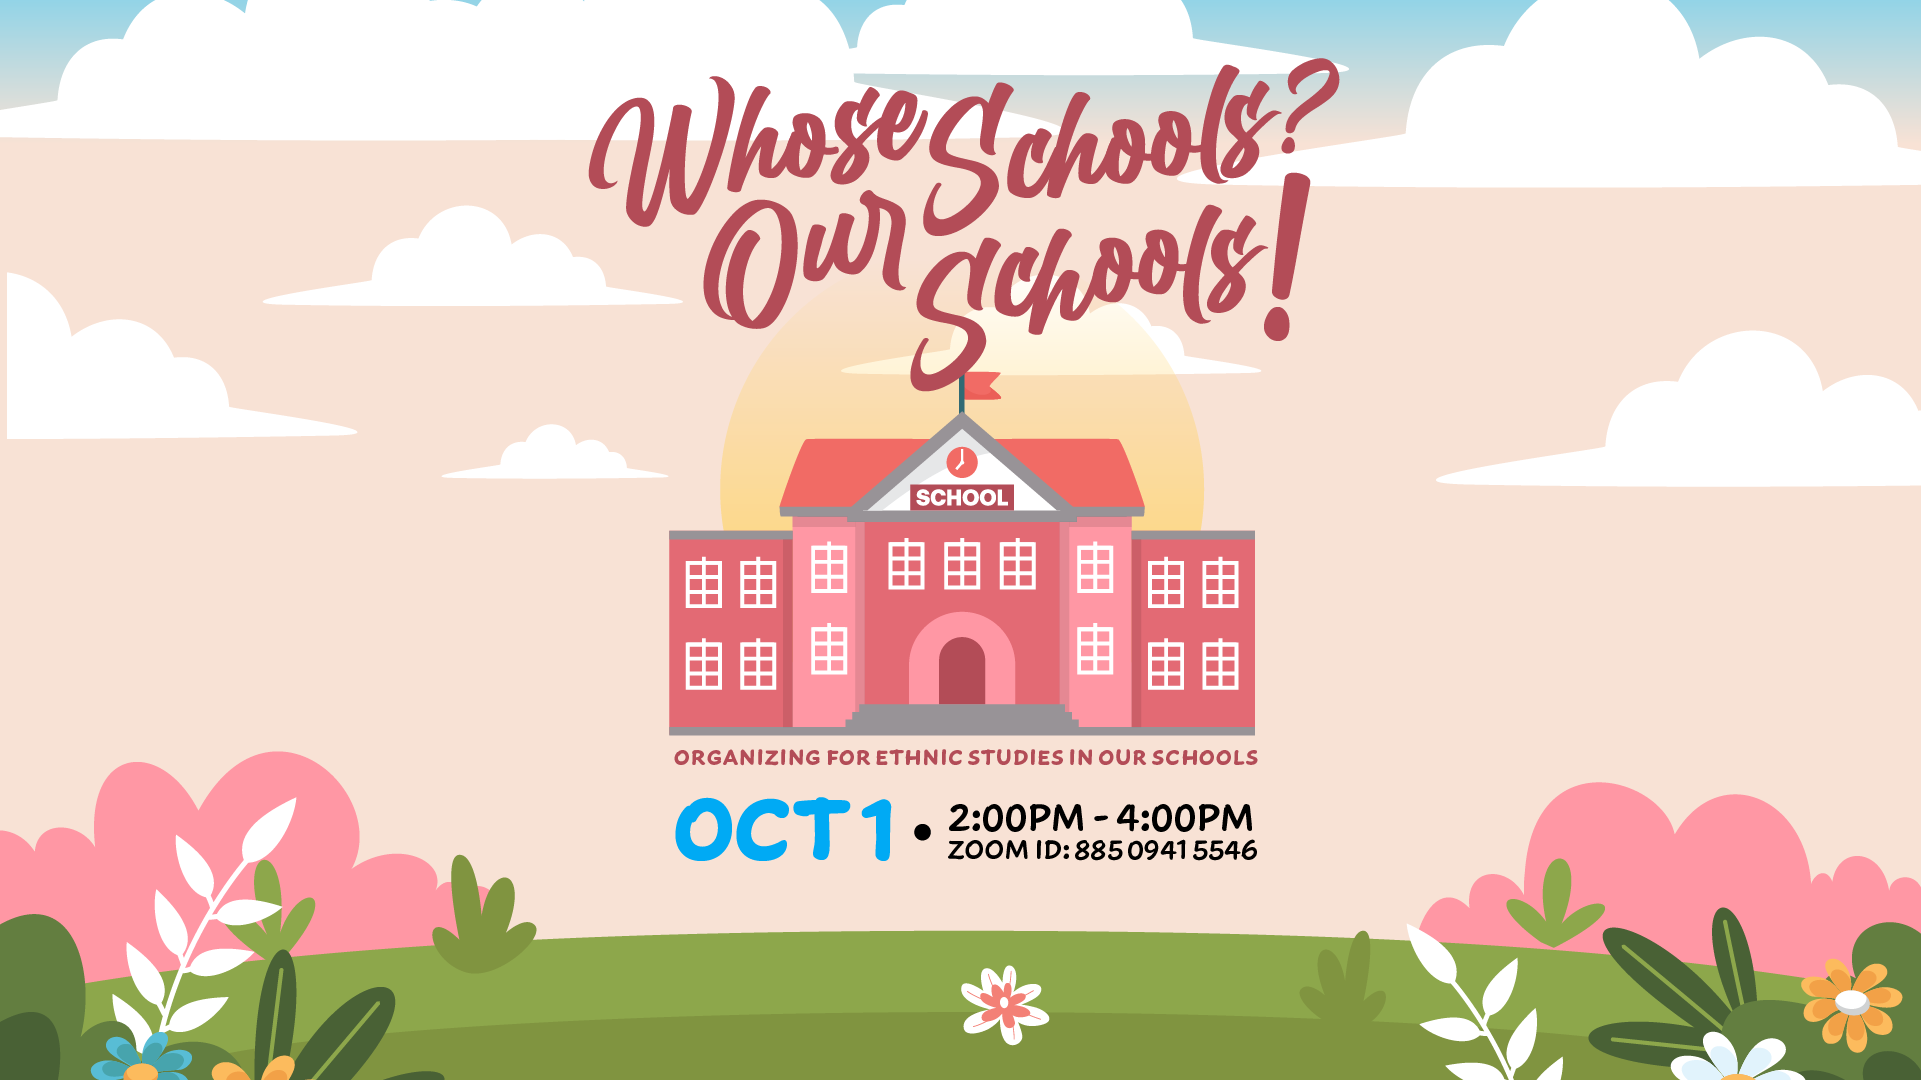 Whose Schools? Our Schools!: Organizing for Ethnic Studies in Our Schools